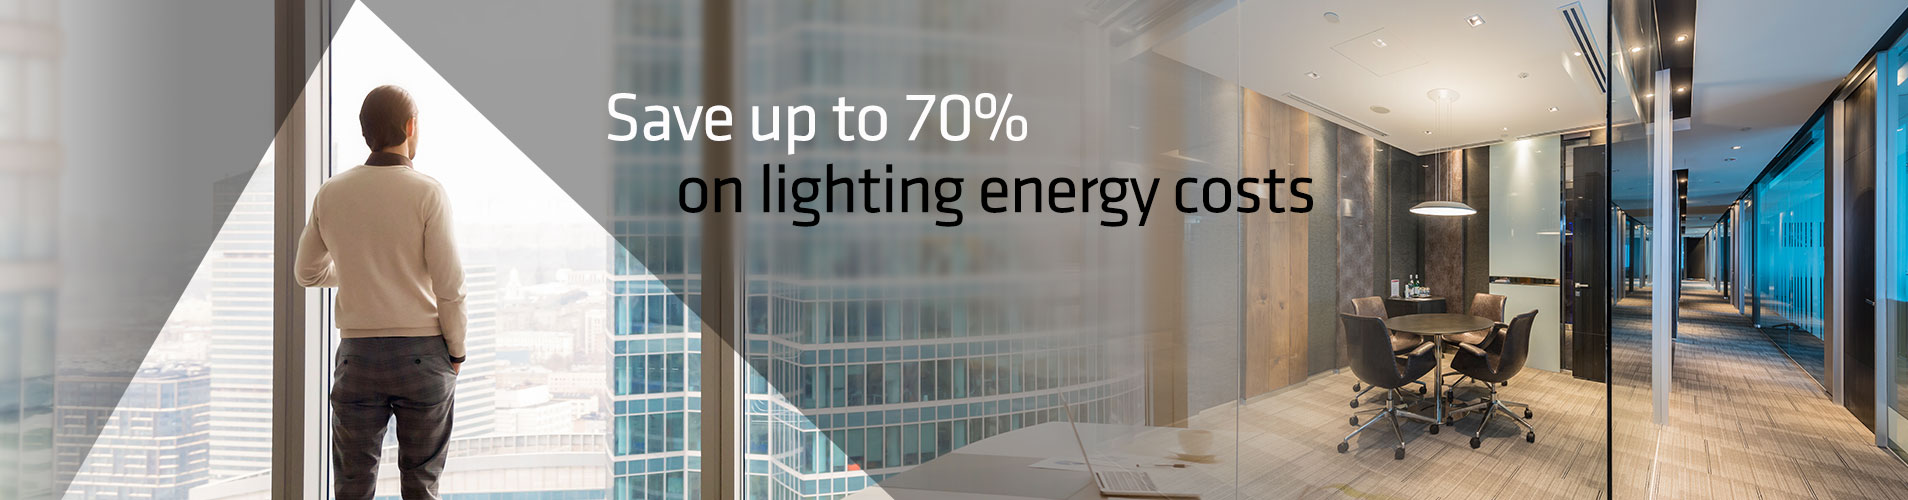 lumitex-save-on-energy-costs